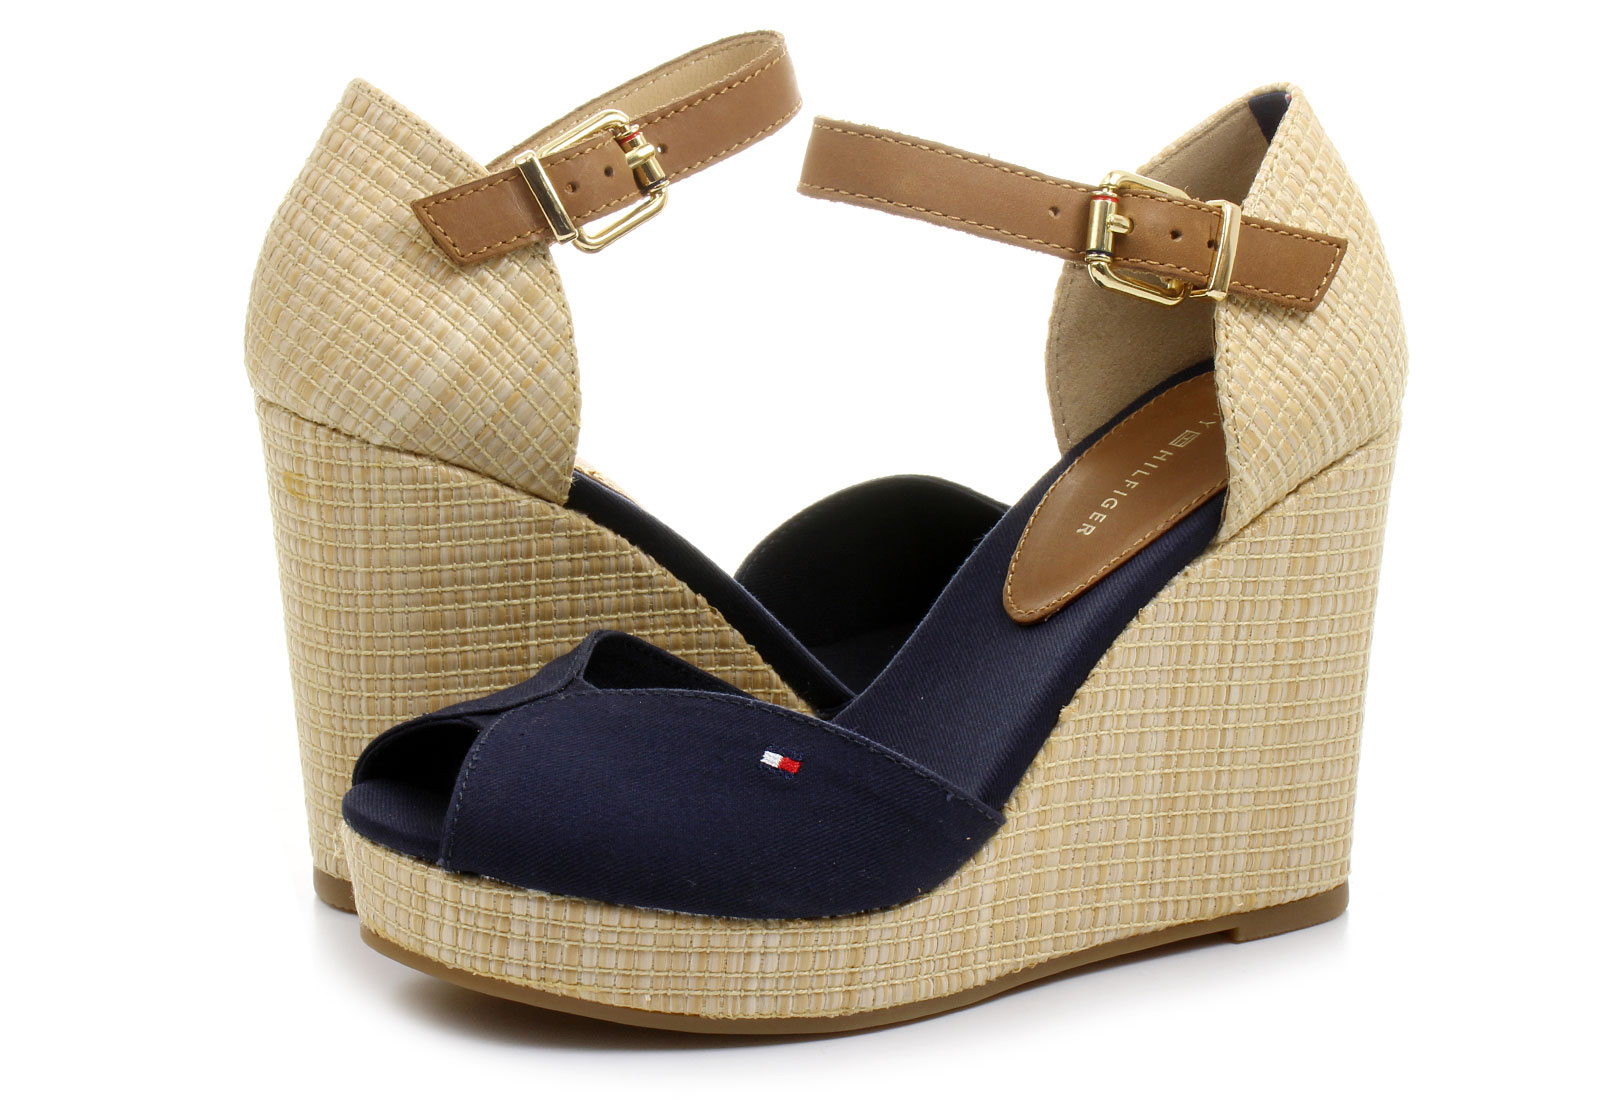 aadb976138 Tommy Hilfiger Platforma Plave Sandale - Elena 11d - Office Shoes ...